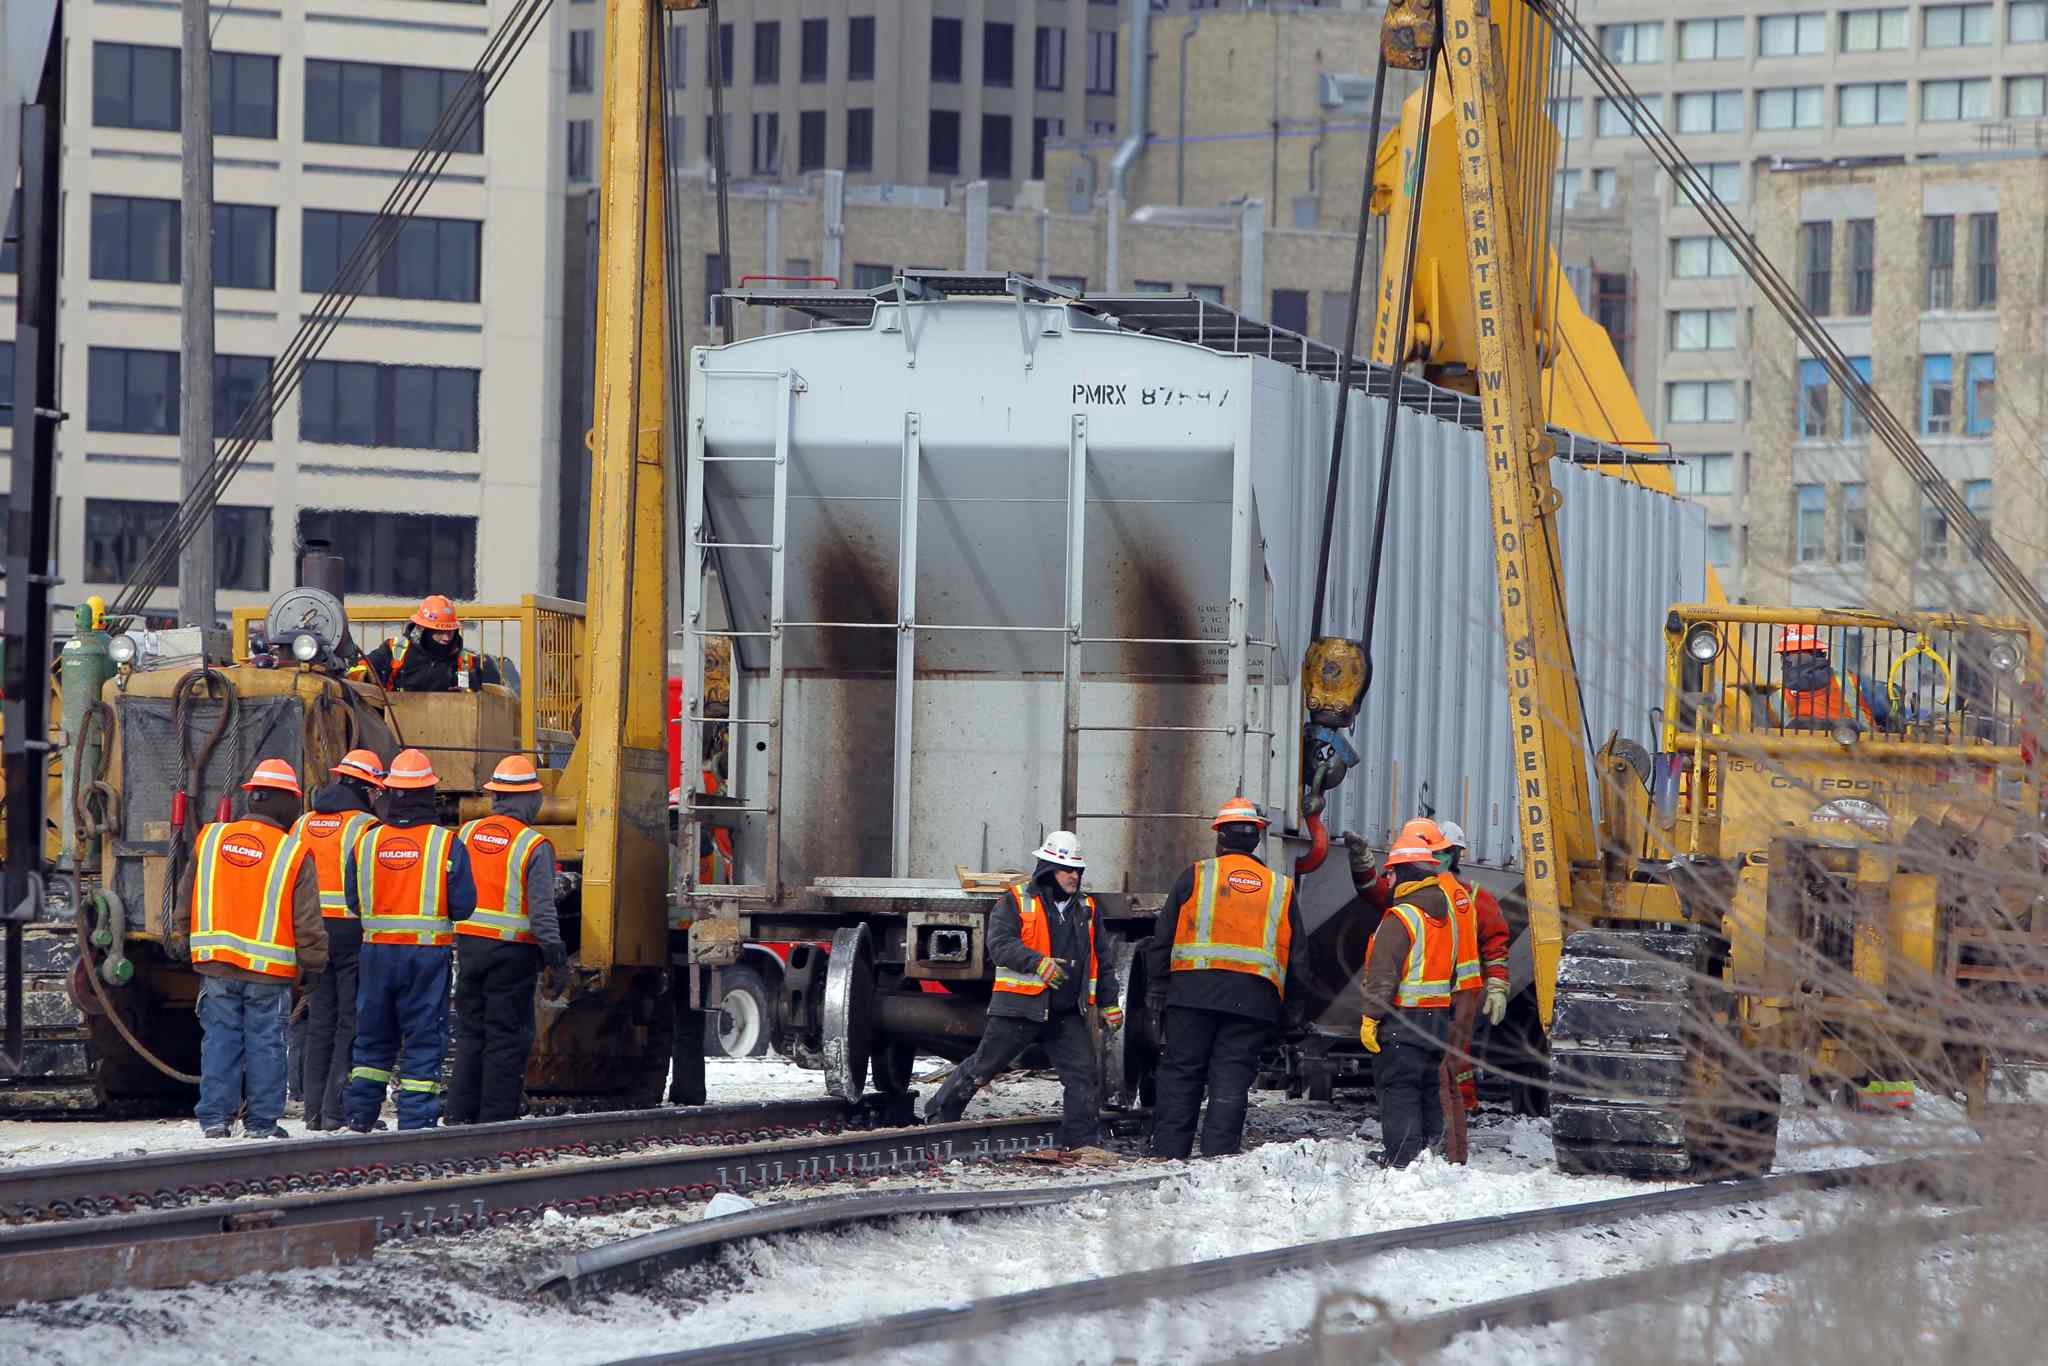 On Thursday, crews were working on the cars derailed near The Forks.